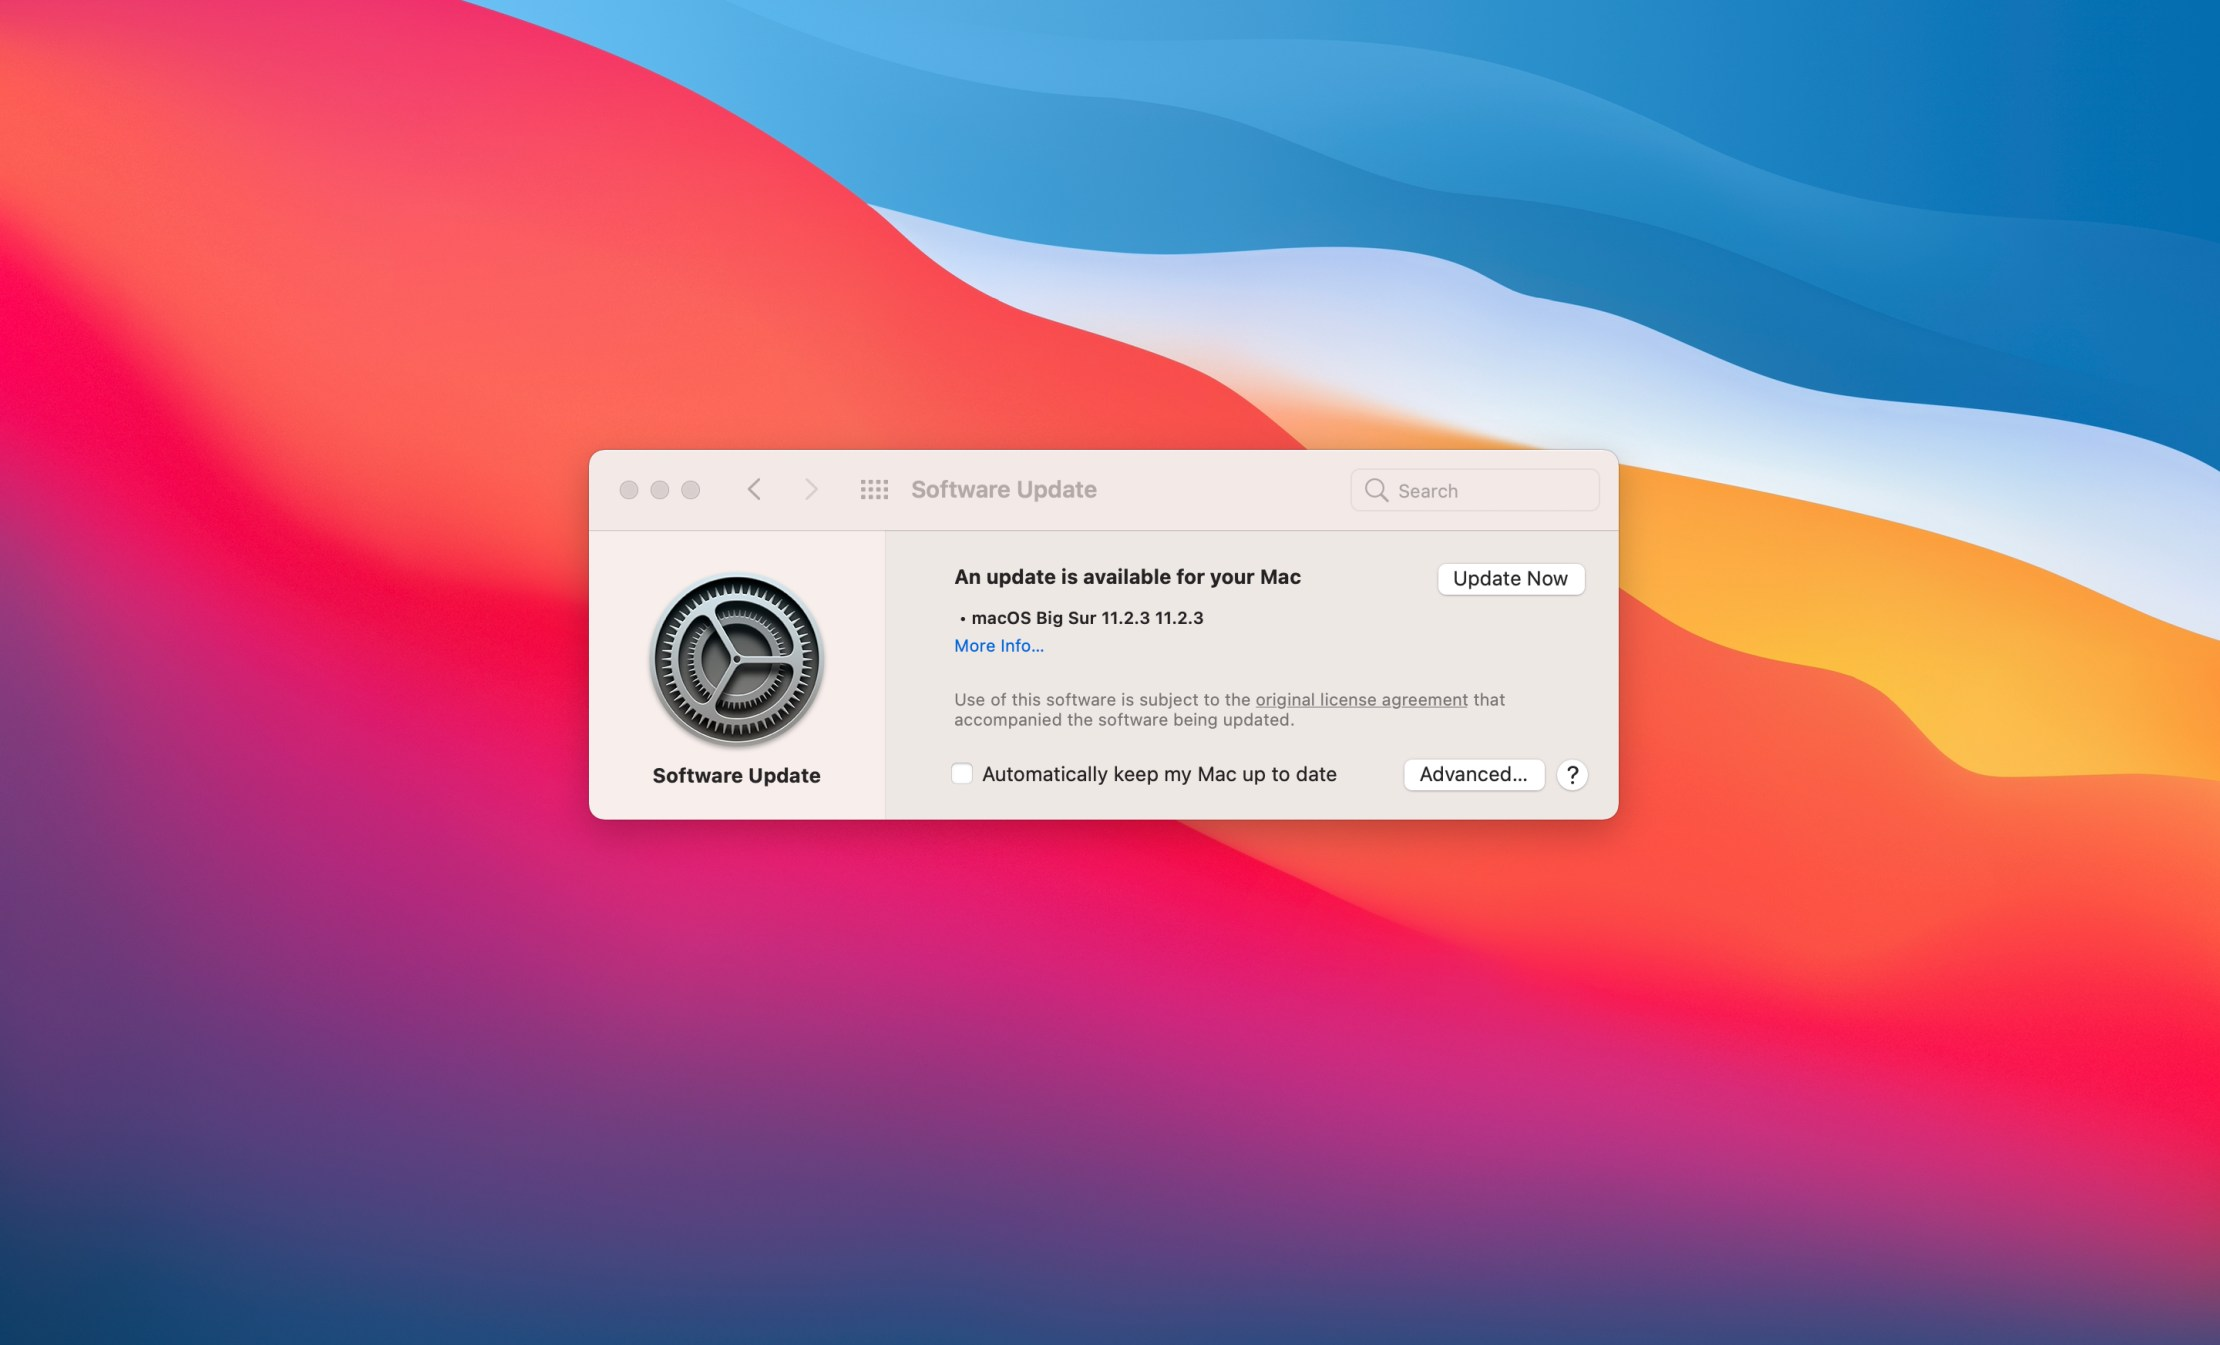 5 Things to Know About the macOS Big Sur 11.2.3 Update